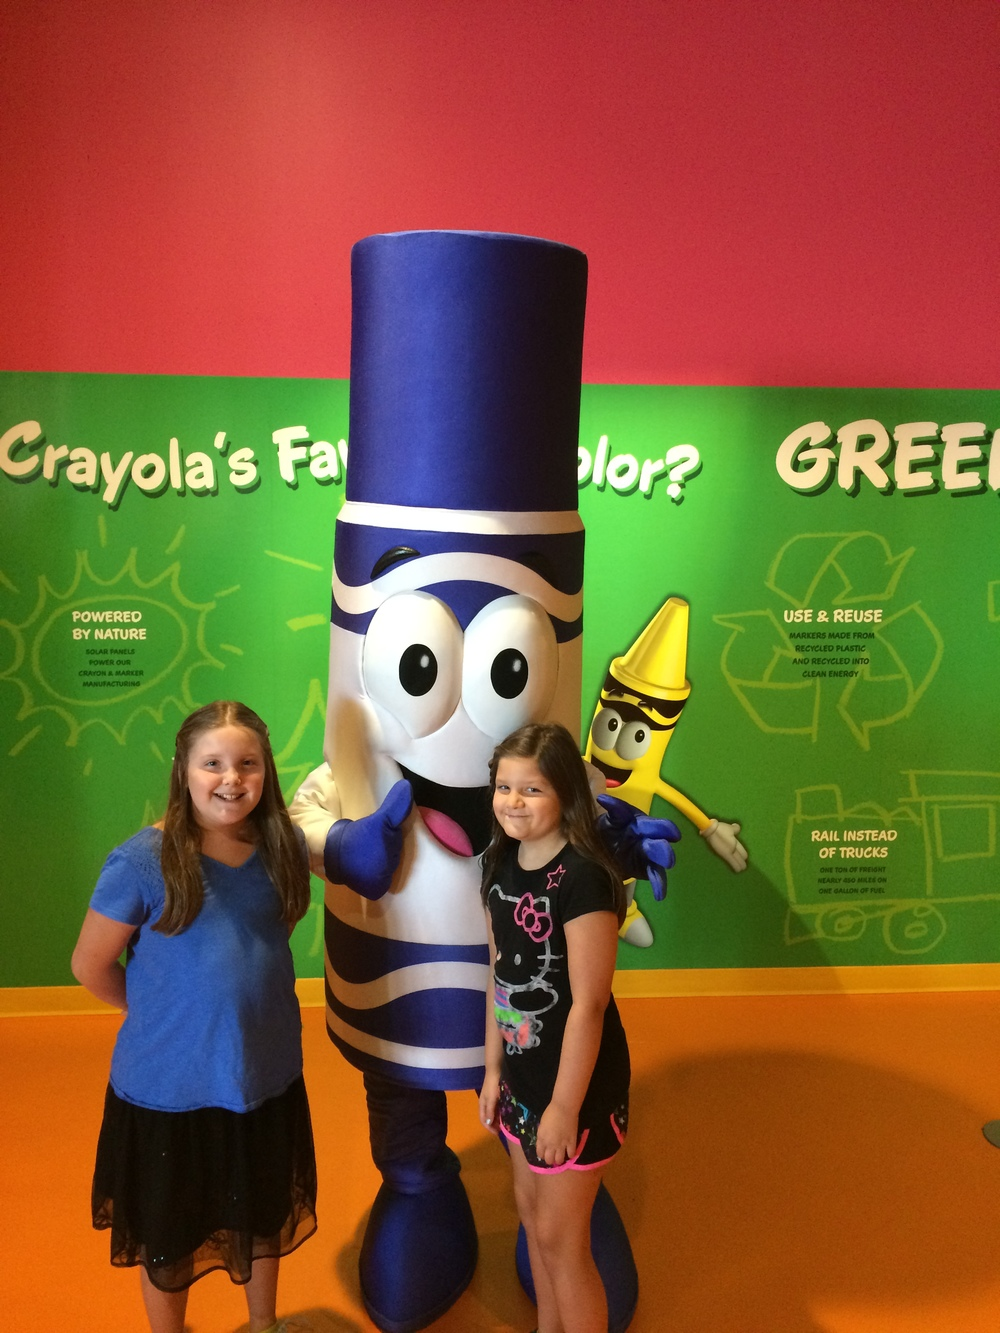 Crayola Experience Orlando, FL   CAFE CRAYOLA Photo Op with the Blue Crayola Marker